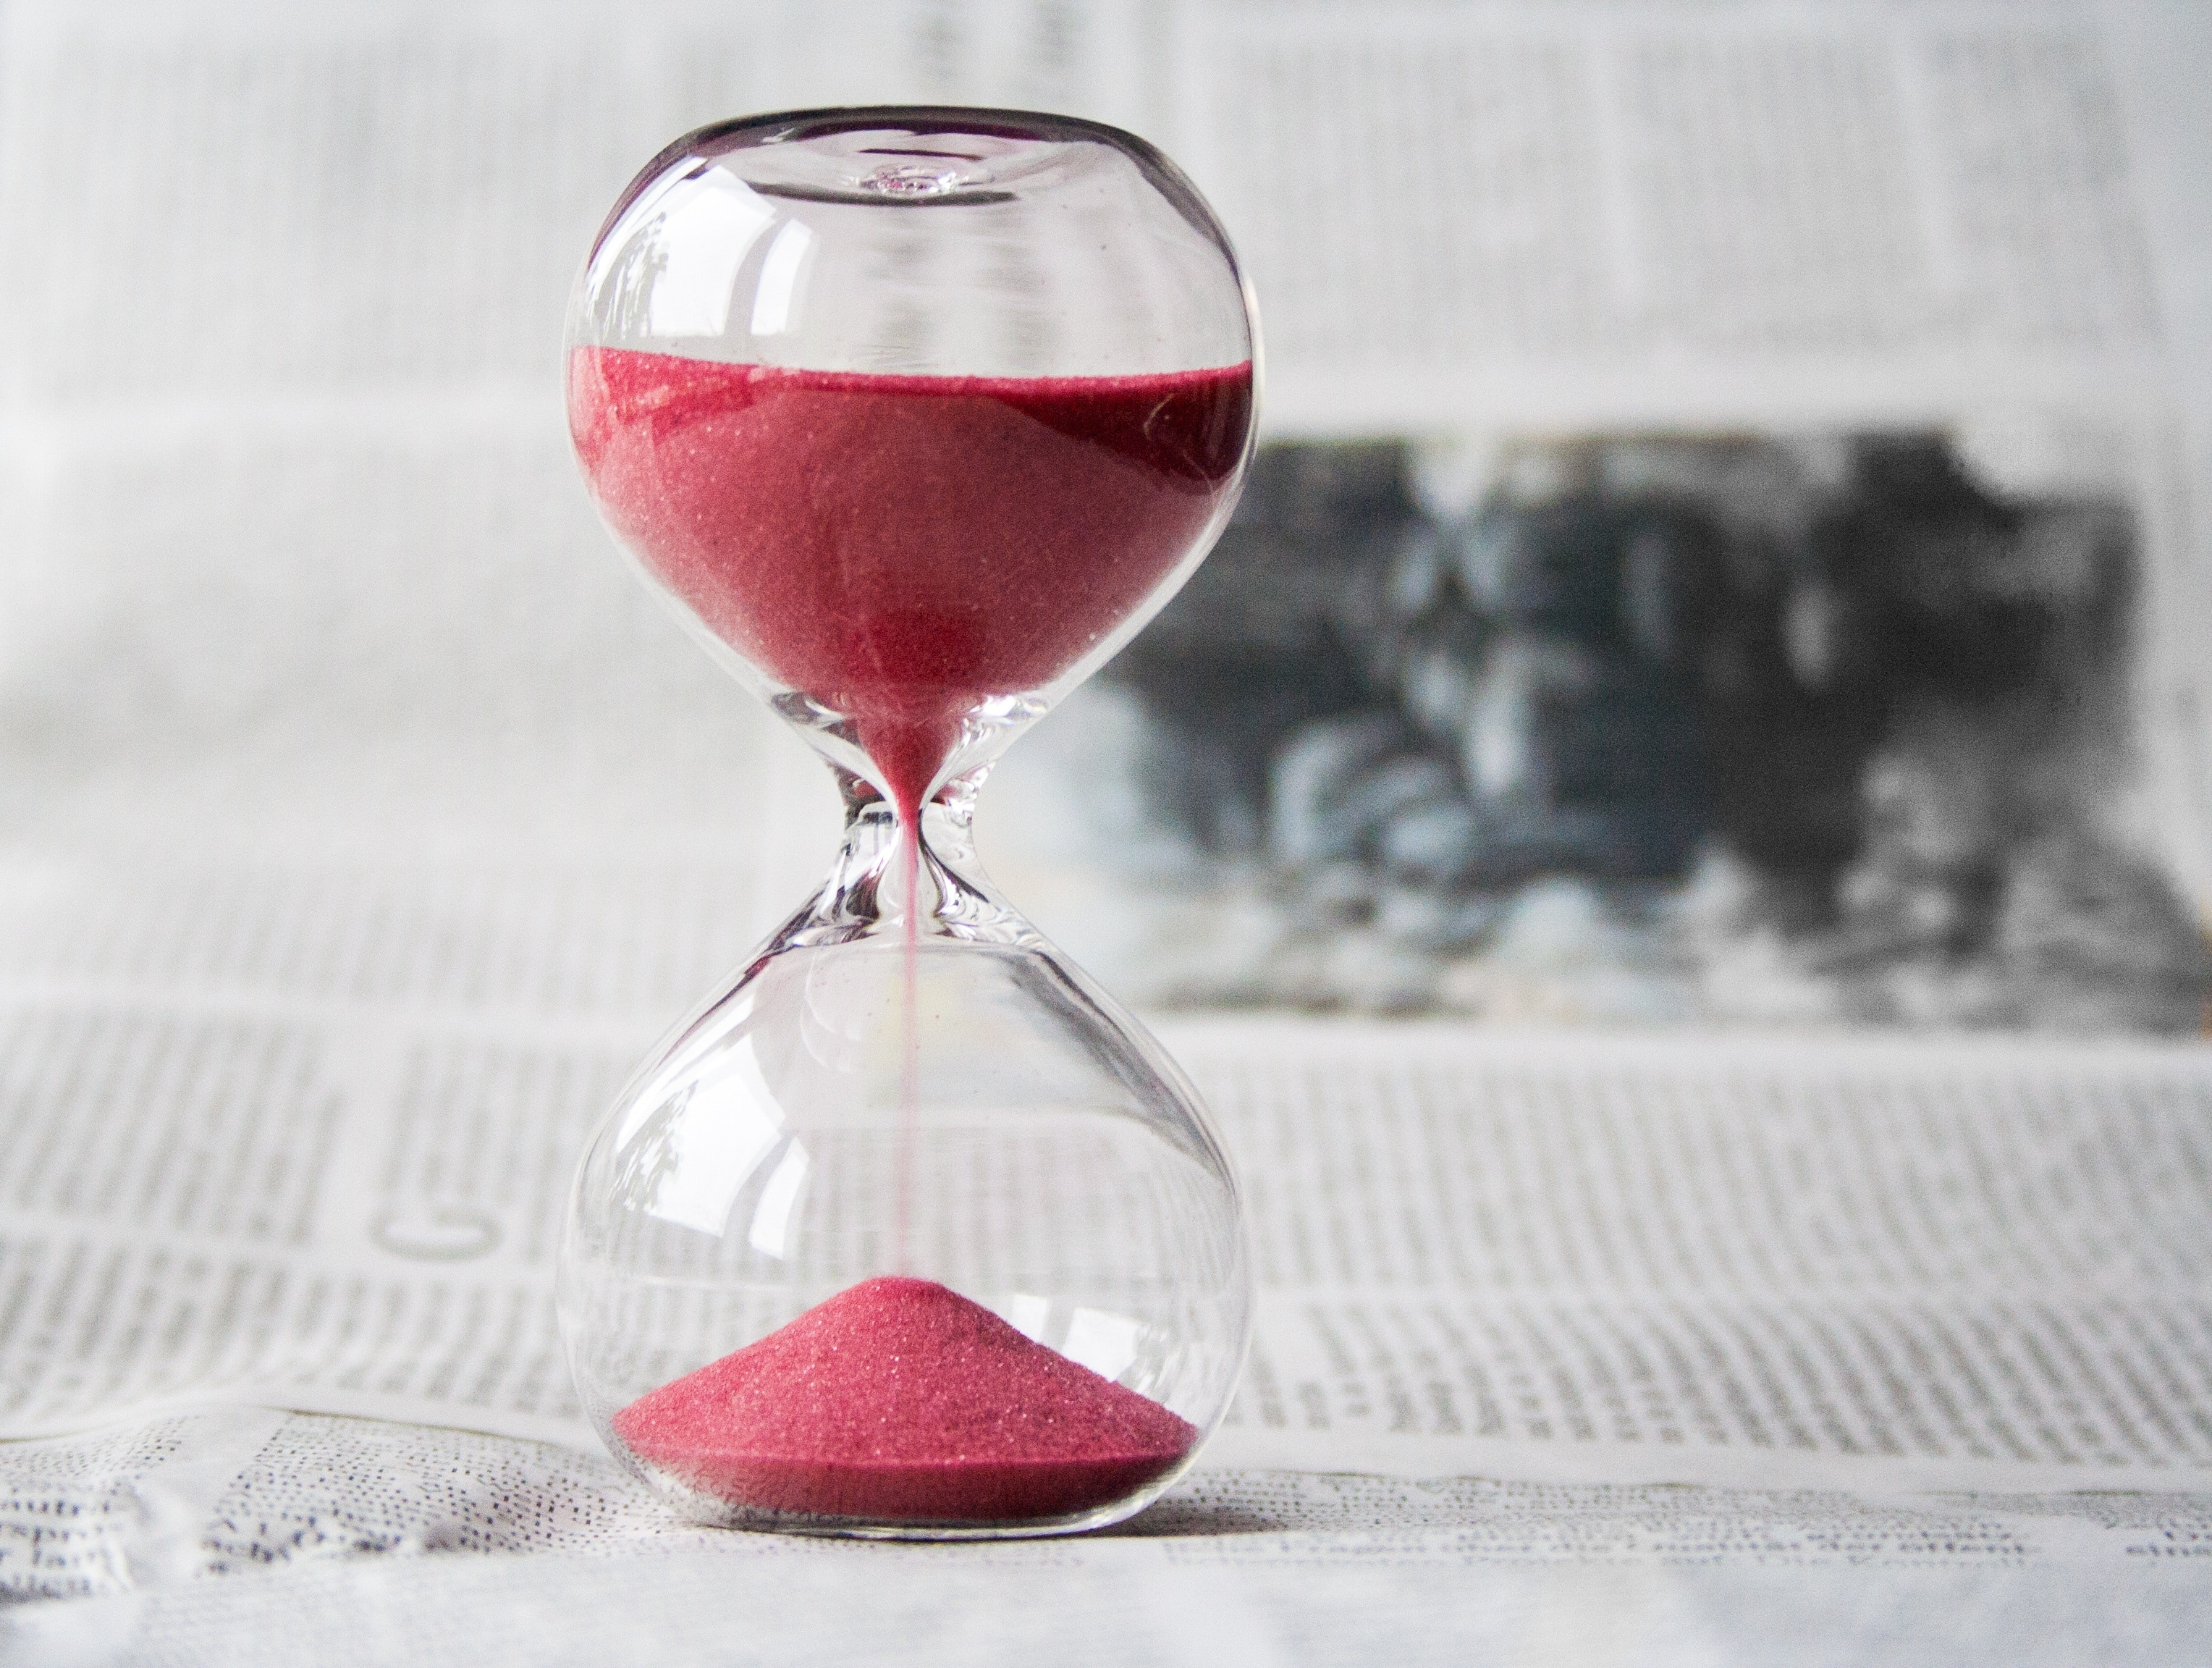 Is now the right time for graduate school?